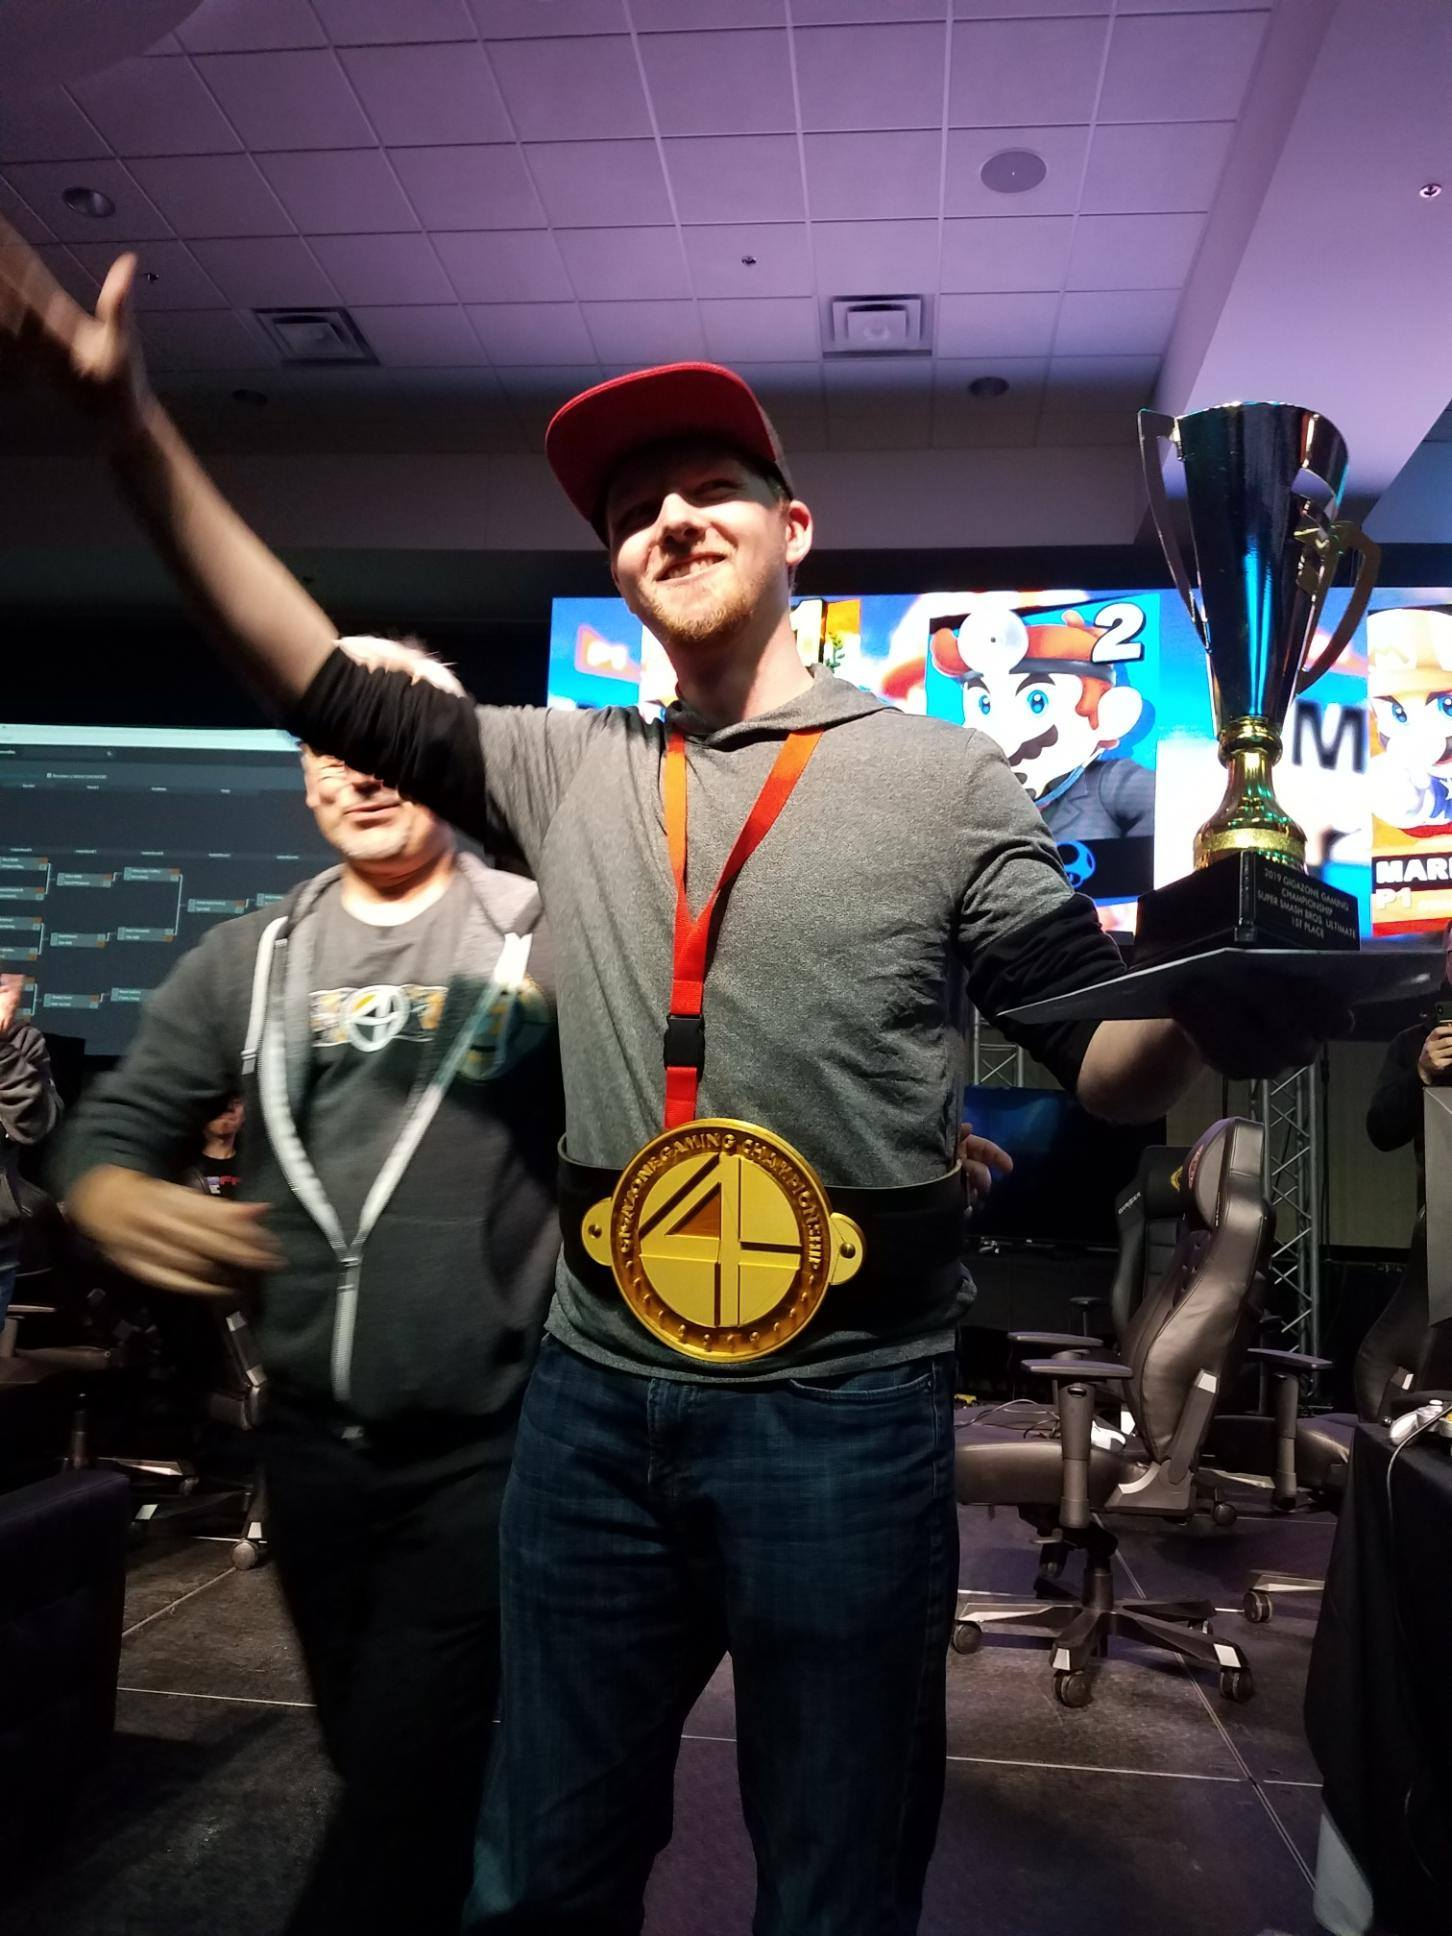 Madden NFL 20 1st place goes to Emery Skinaway of Red Lake and 2nd place goes to Brandon Miller of Brainerd at #GZGC19